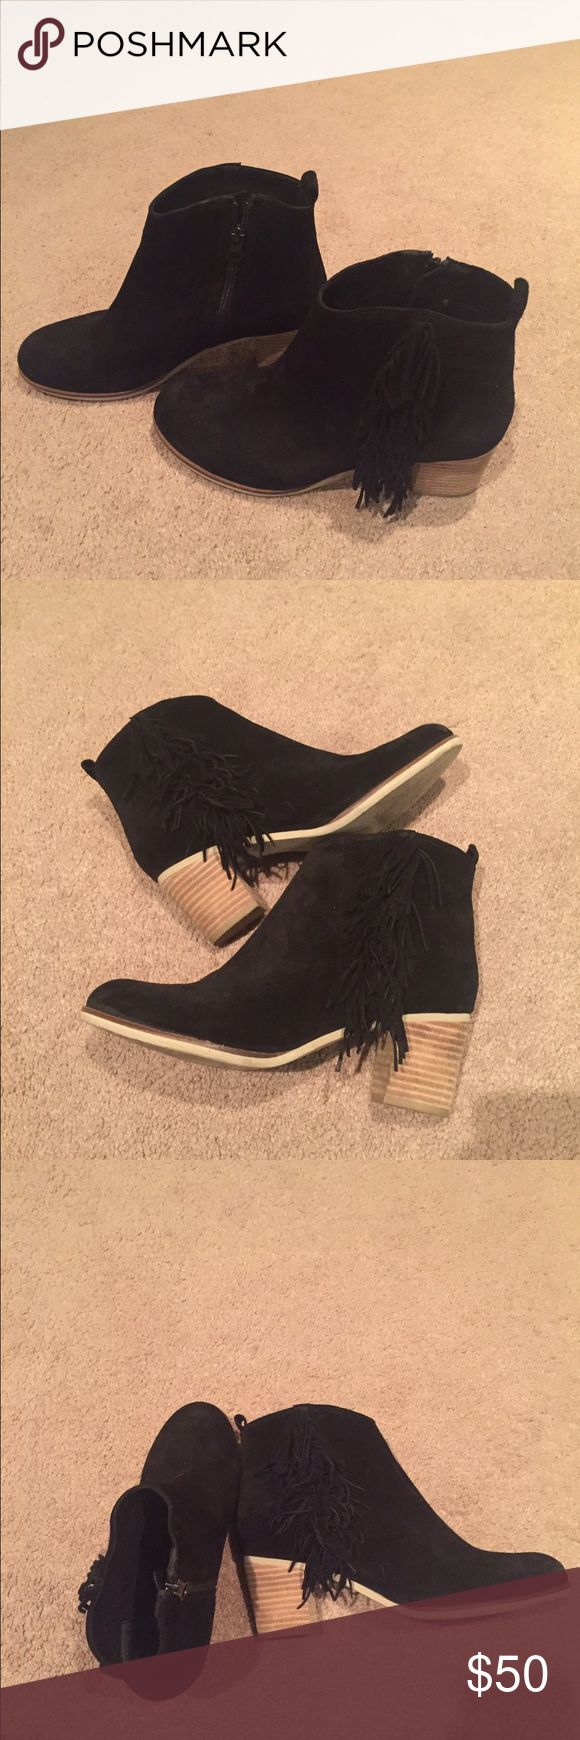 Matisse black fringe ankle boot Matisse black fringe ankle boot--these are such a staple shoe. Worn only twice! Like new :) heel height is about 2 inches. Matisse Shoes Ankle Boots & Booties